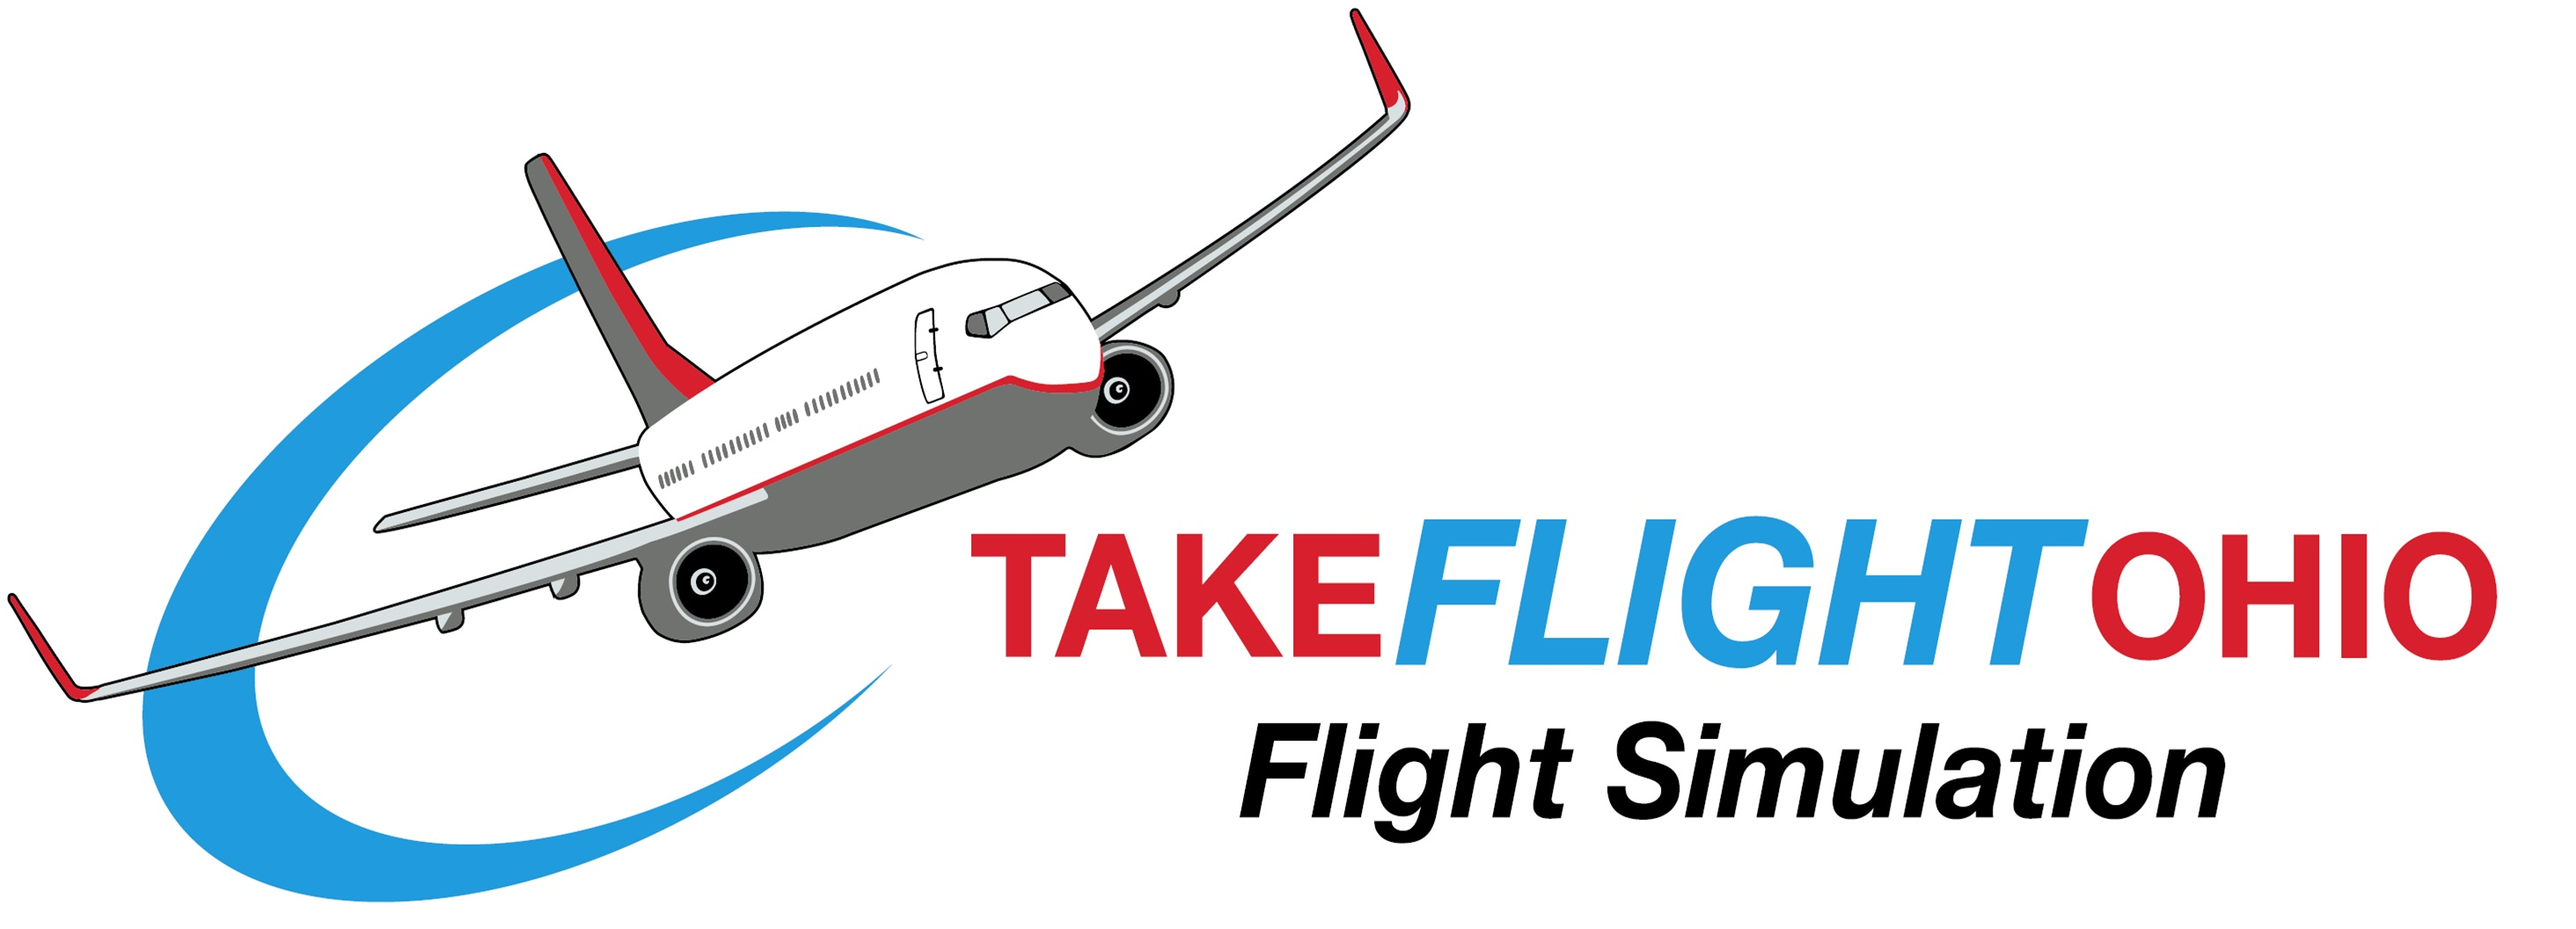 Take Flight Ohio logo